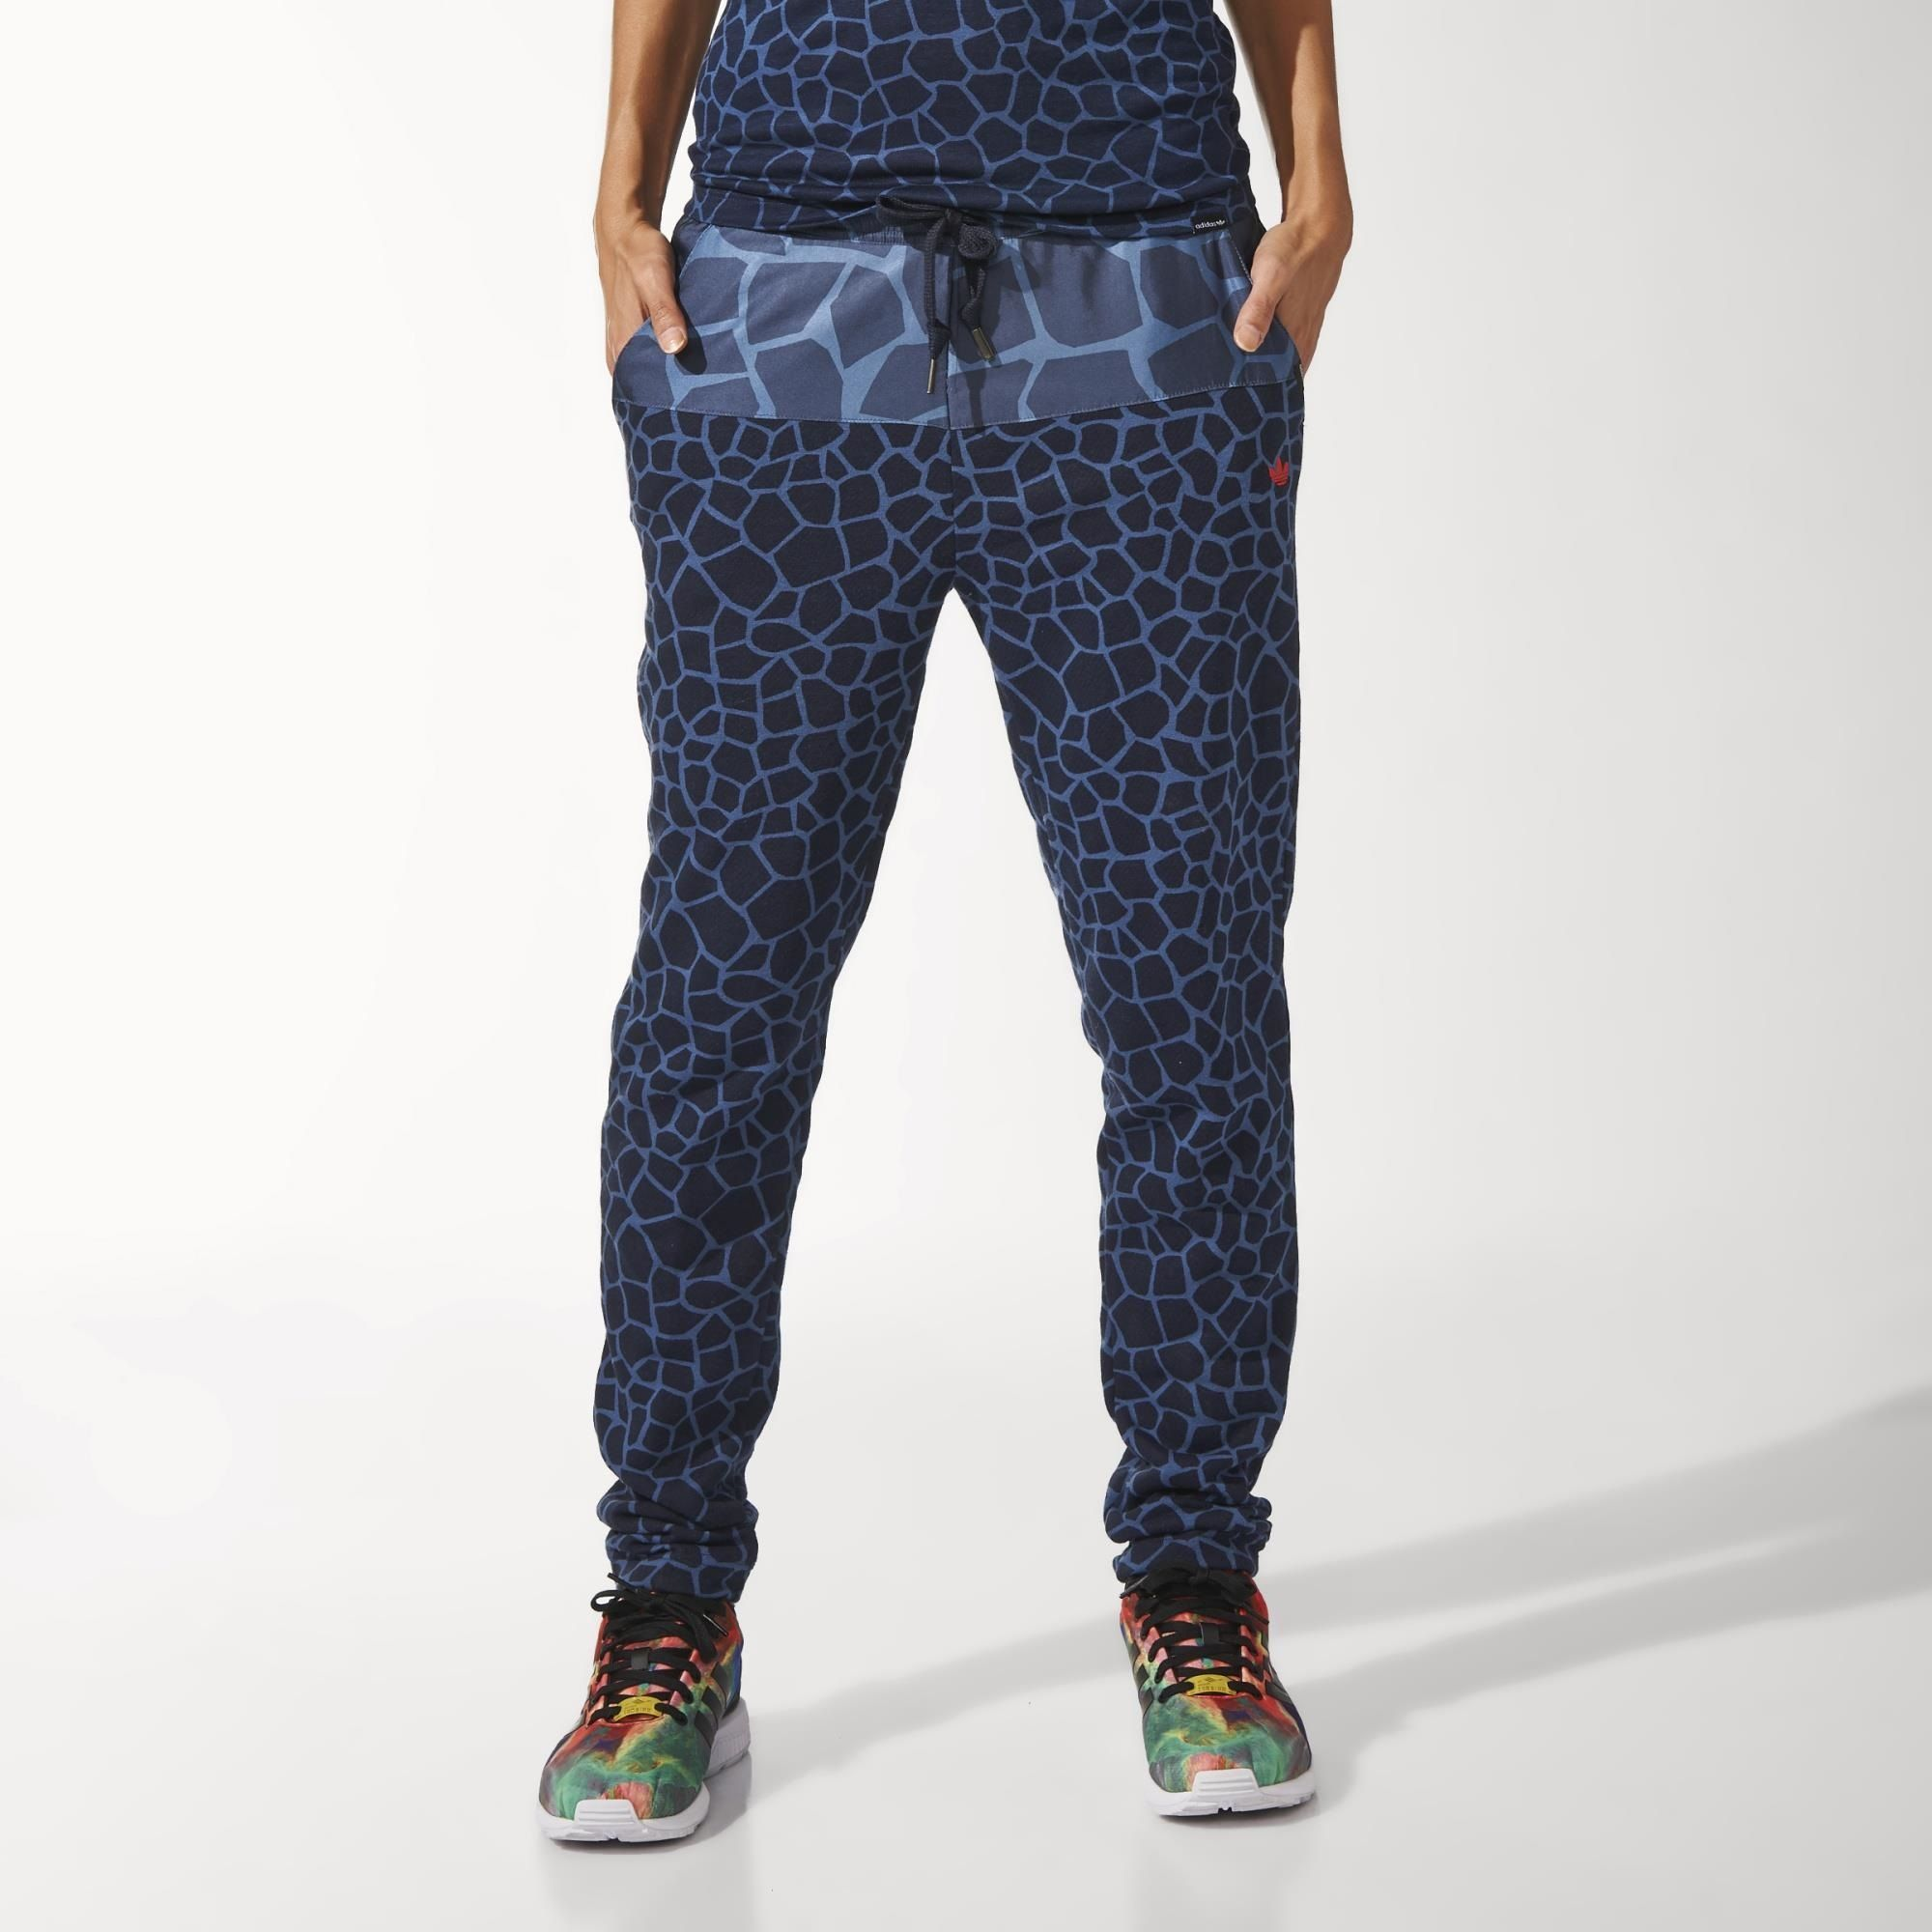 adidas Giraffe Fashion Track Pants | adidas UK